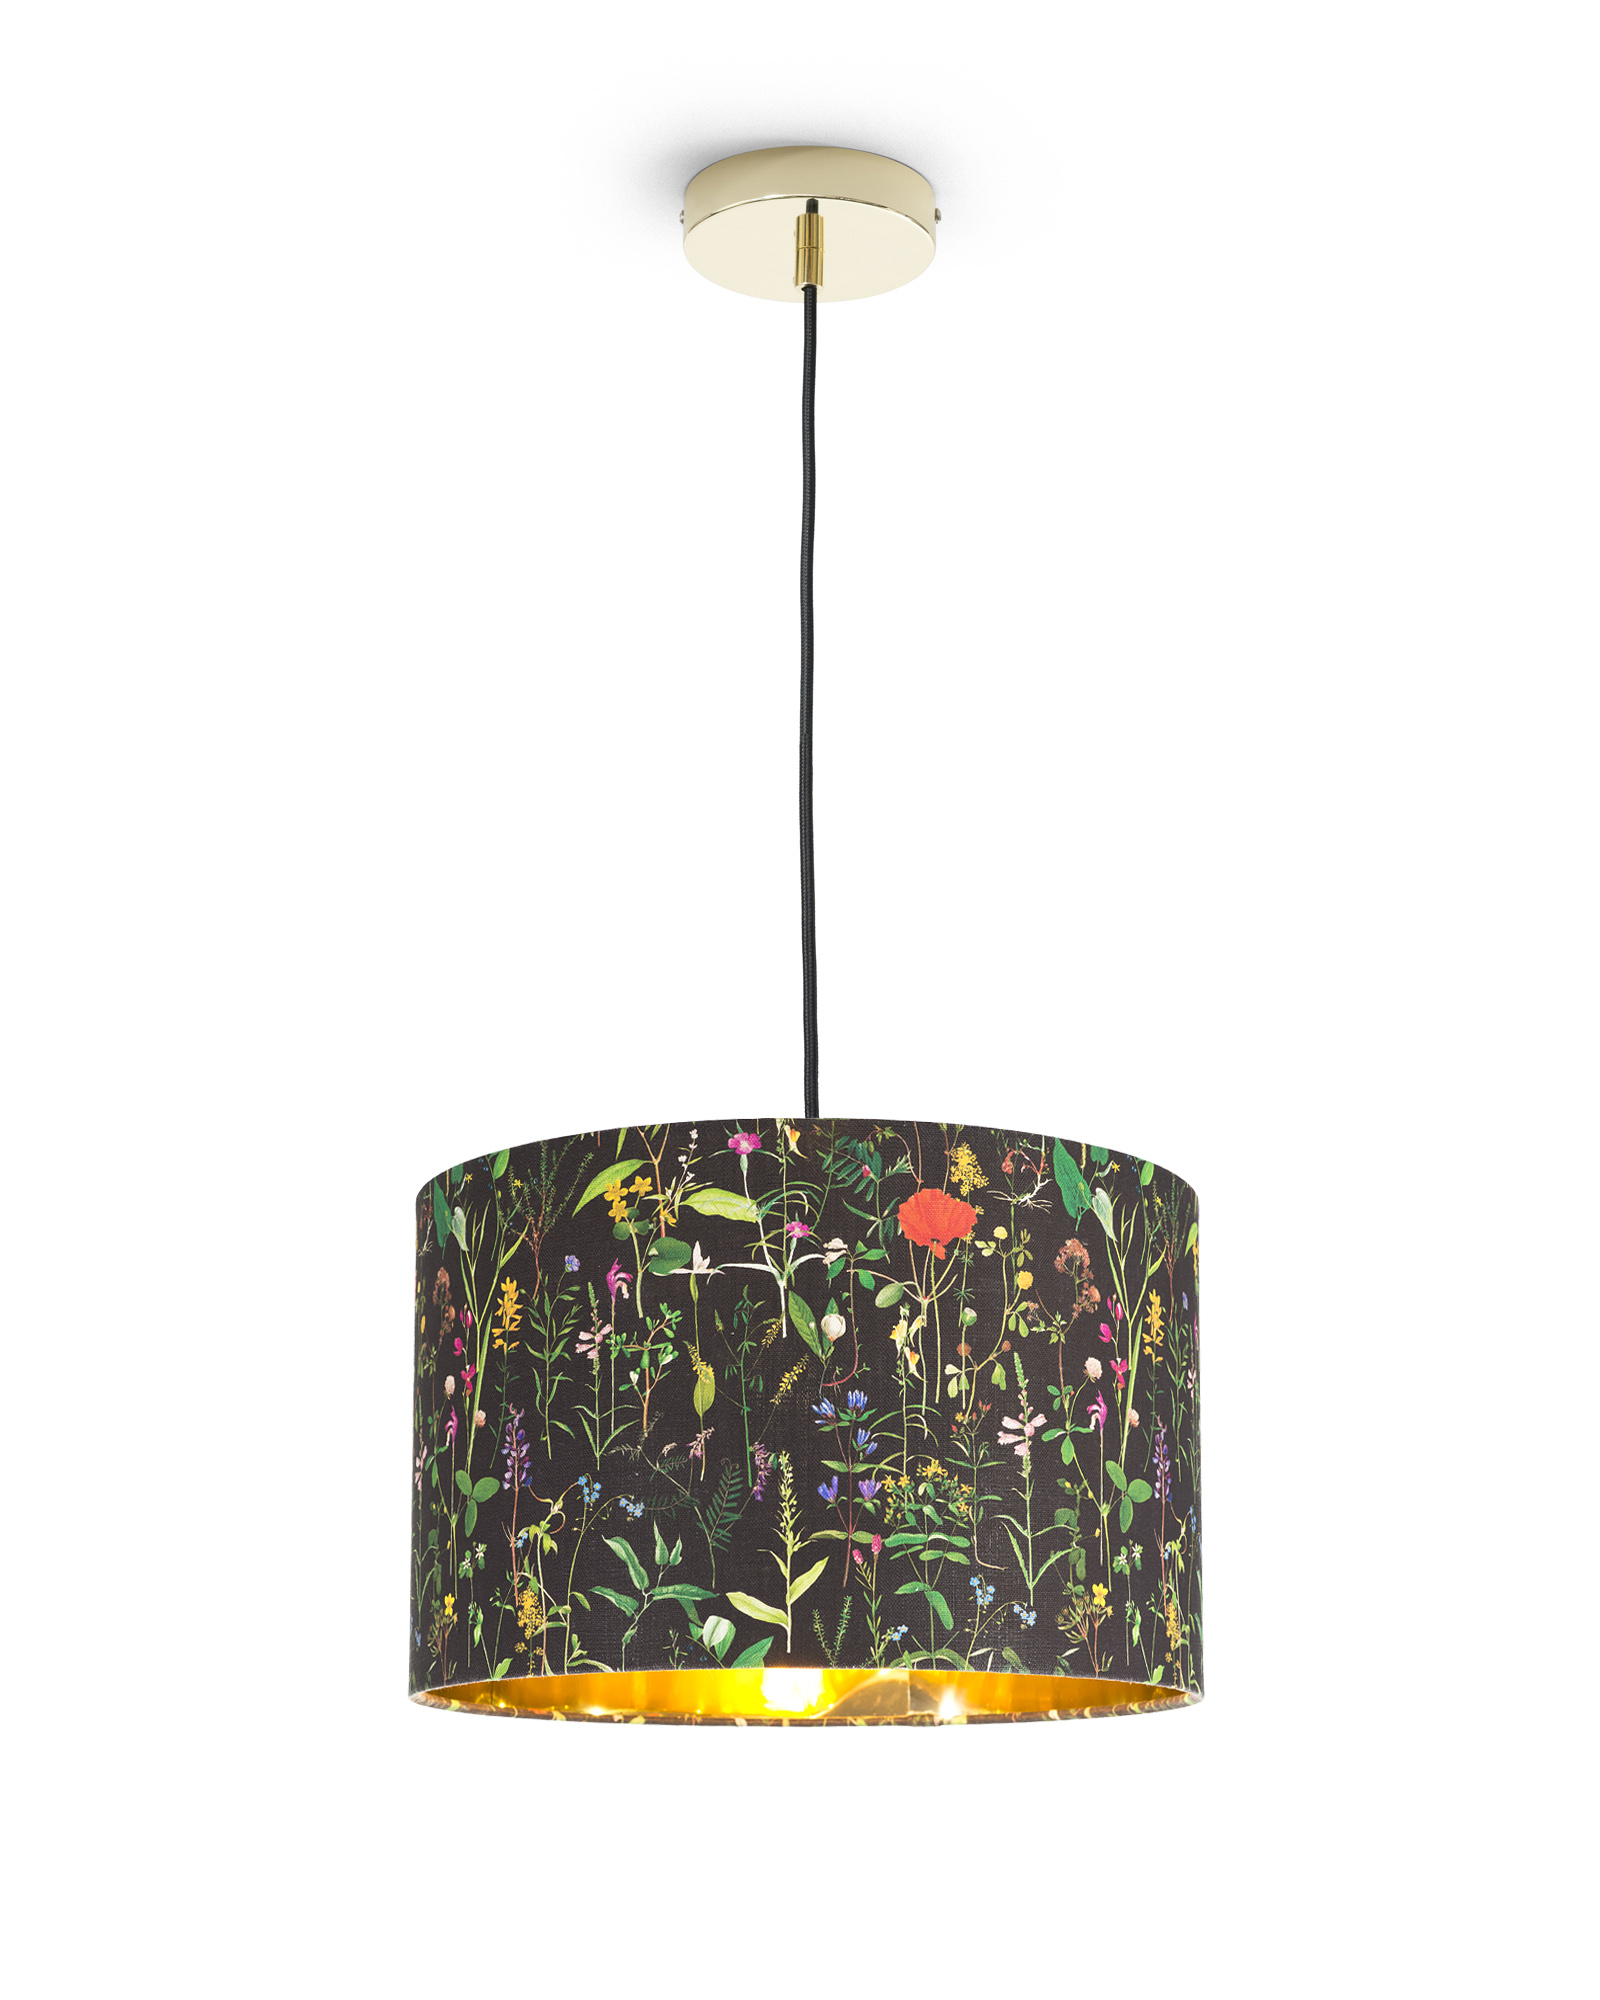 AQUAFLEUR Anthracite Pendant Light 35cm x 22cm